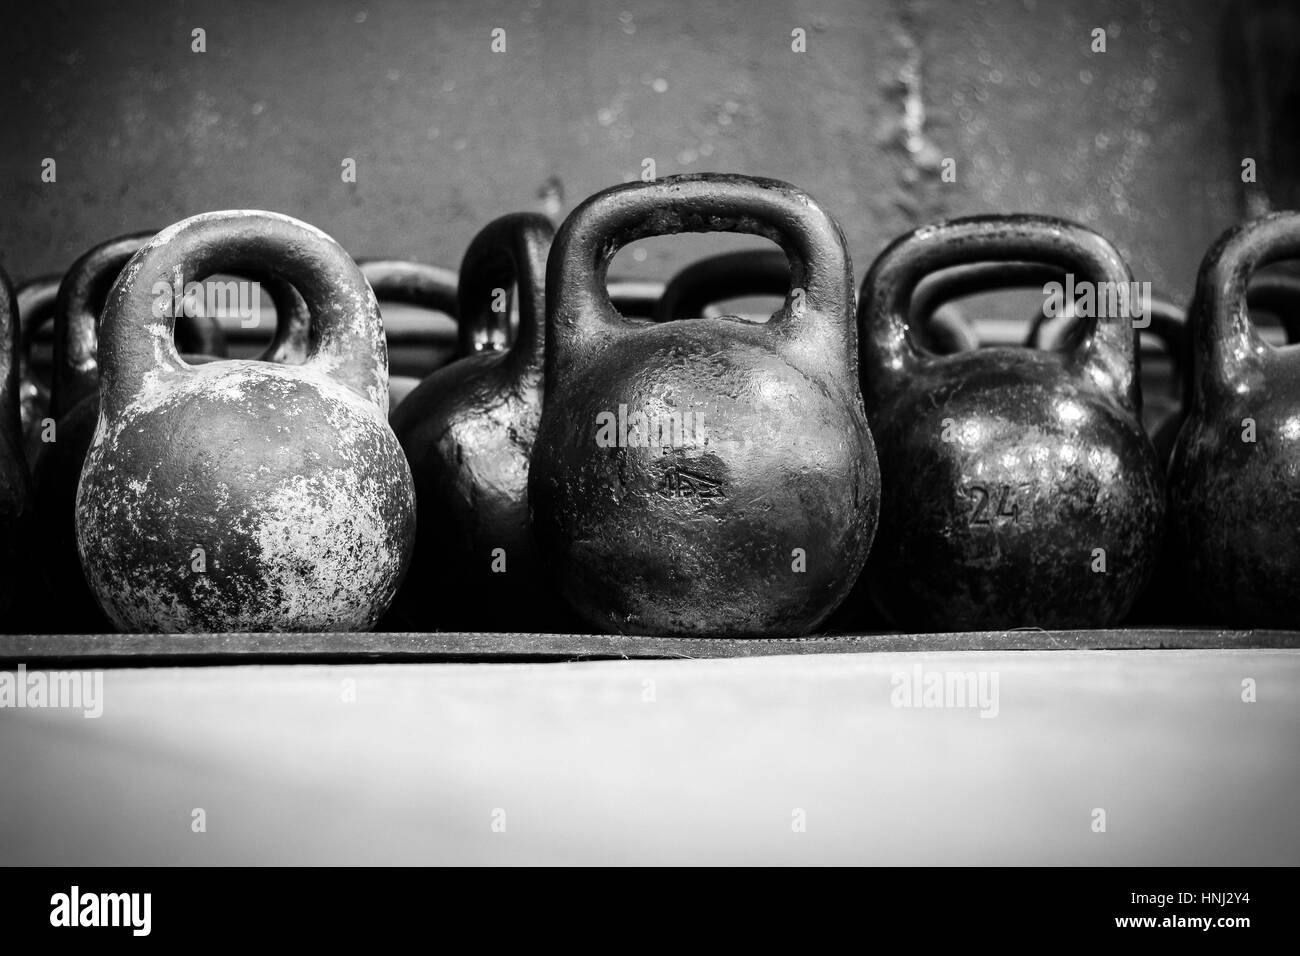 39b7988e886 Old worn dumbells in gym in black and white Stock Photo  133777816 ...